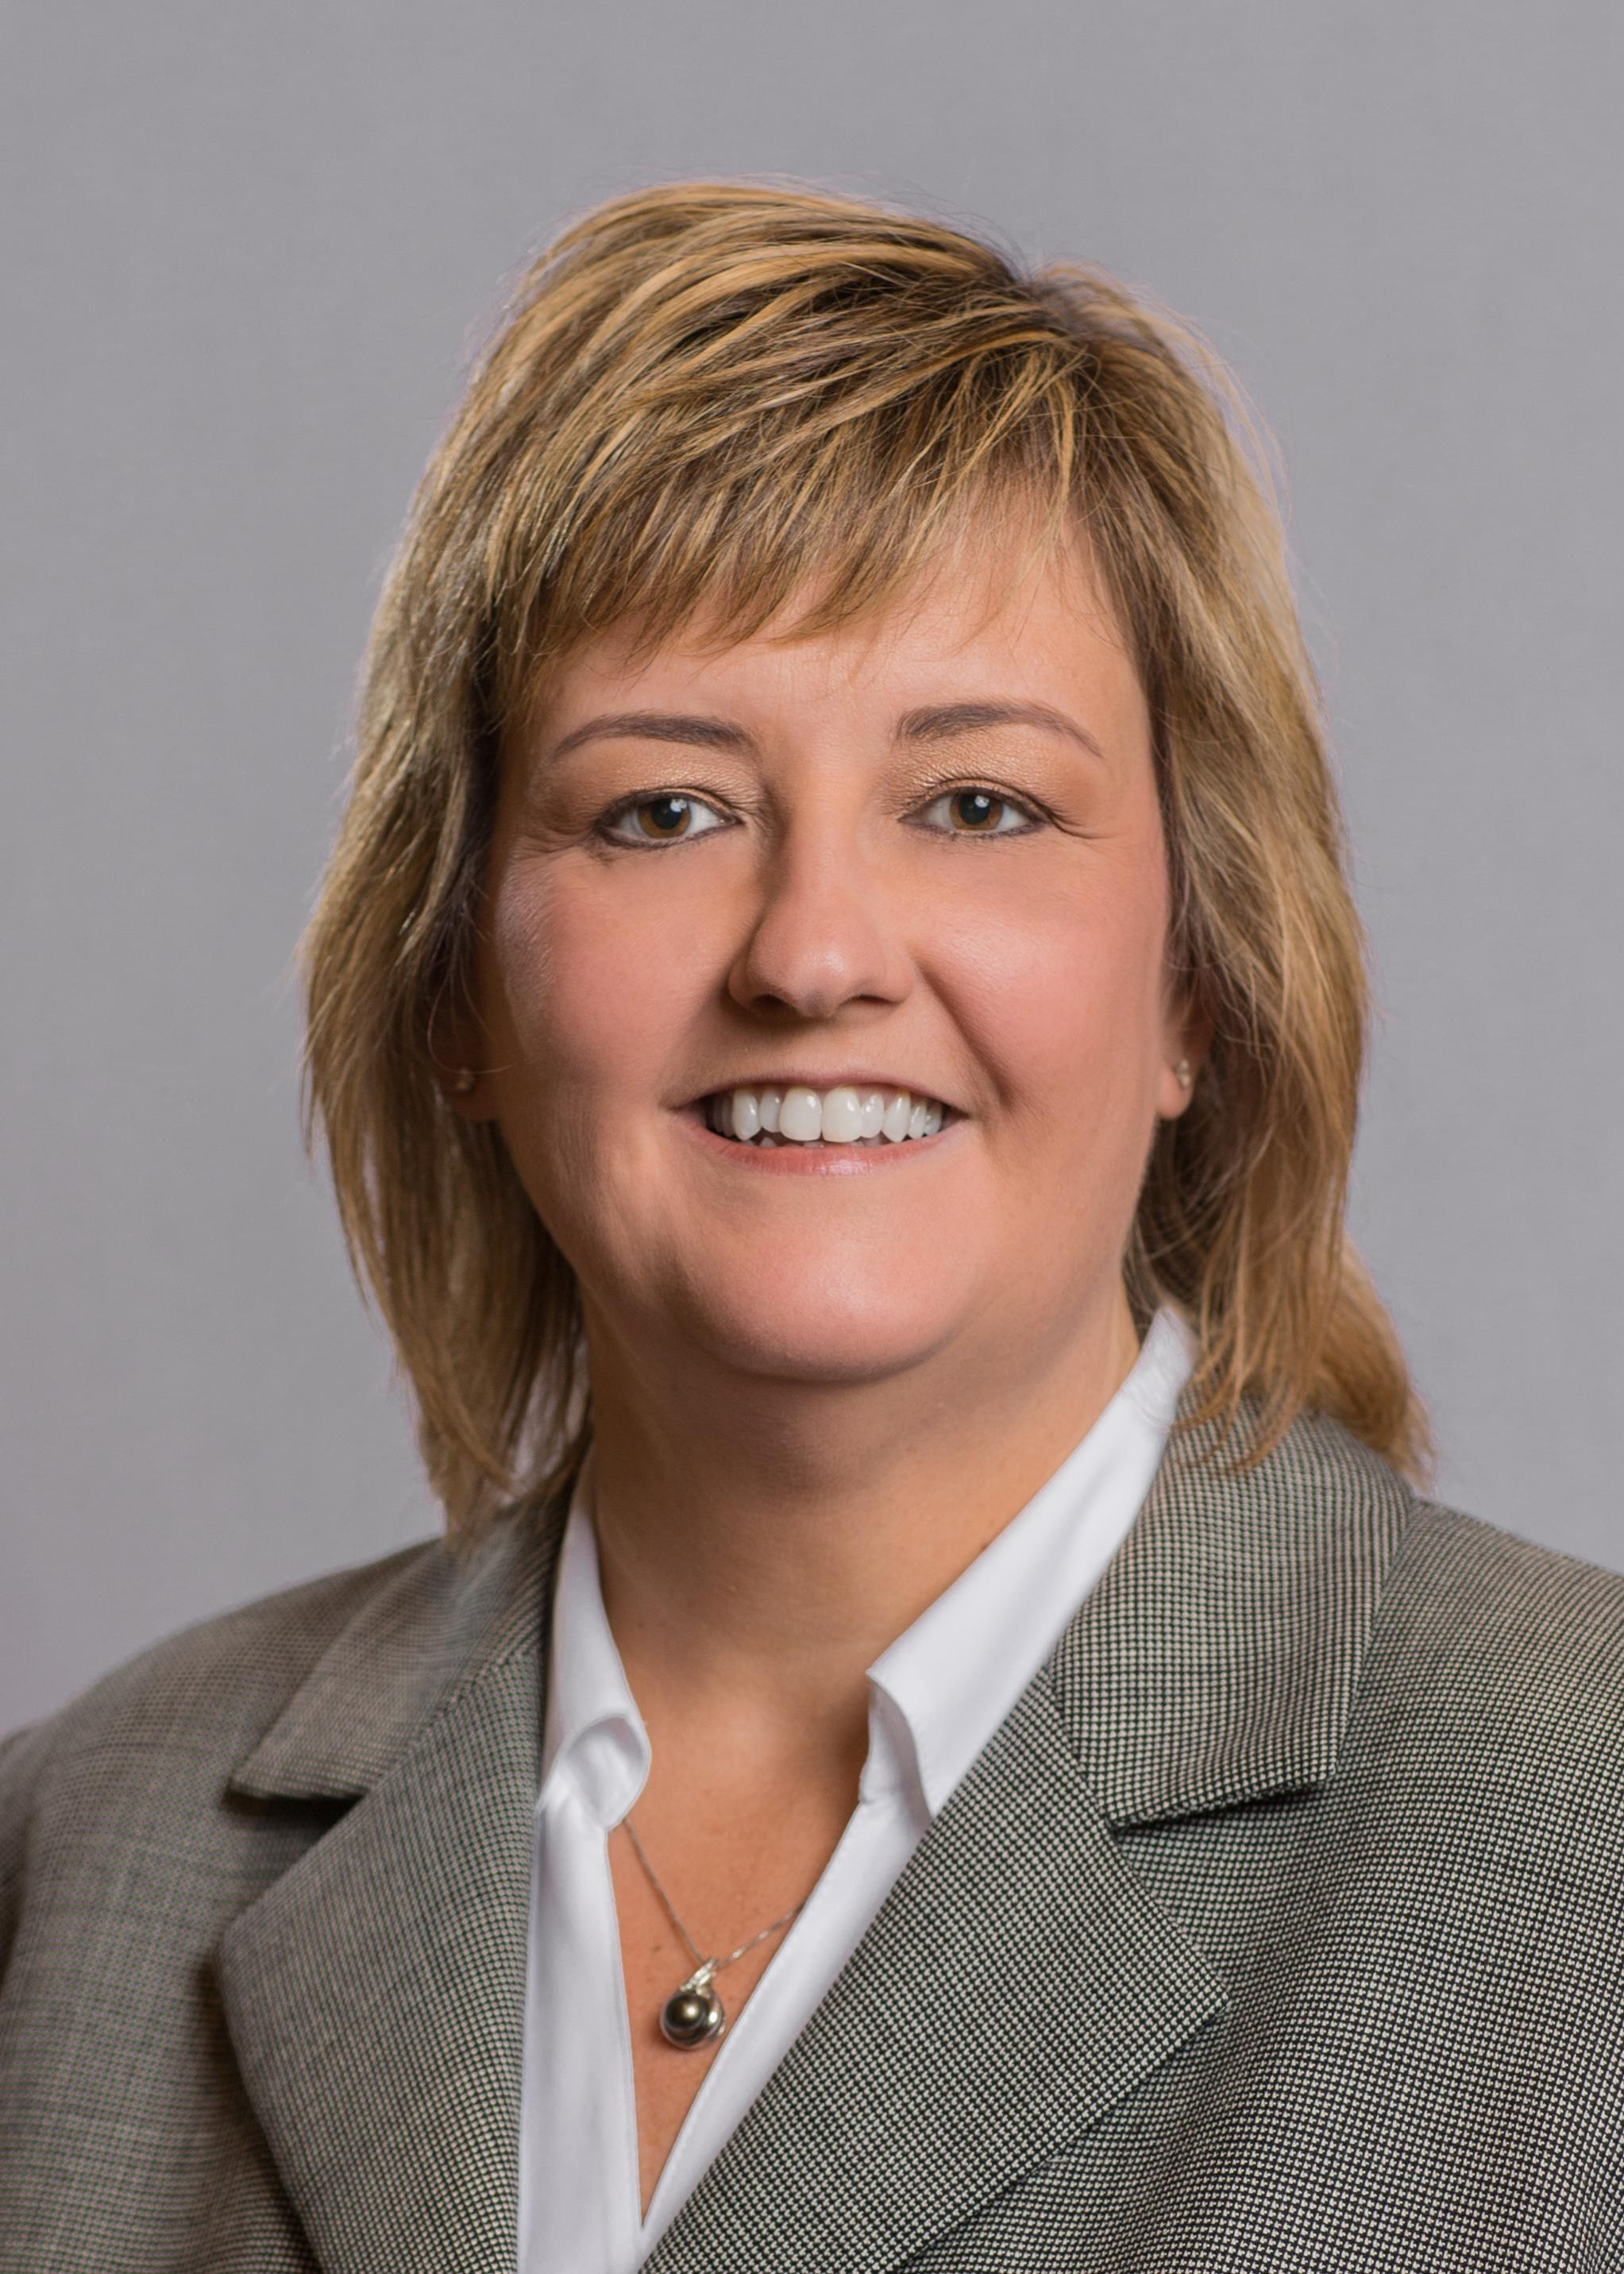 ChargePoint Appoints Former PowerTeam Services CEO Roxanne Bowman to Board of Directors